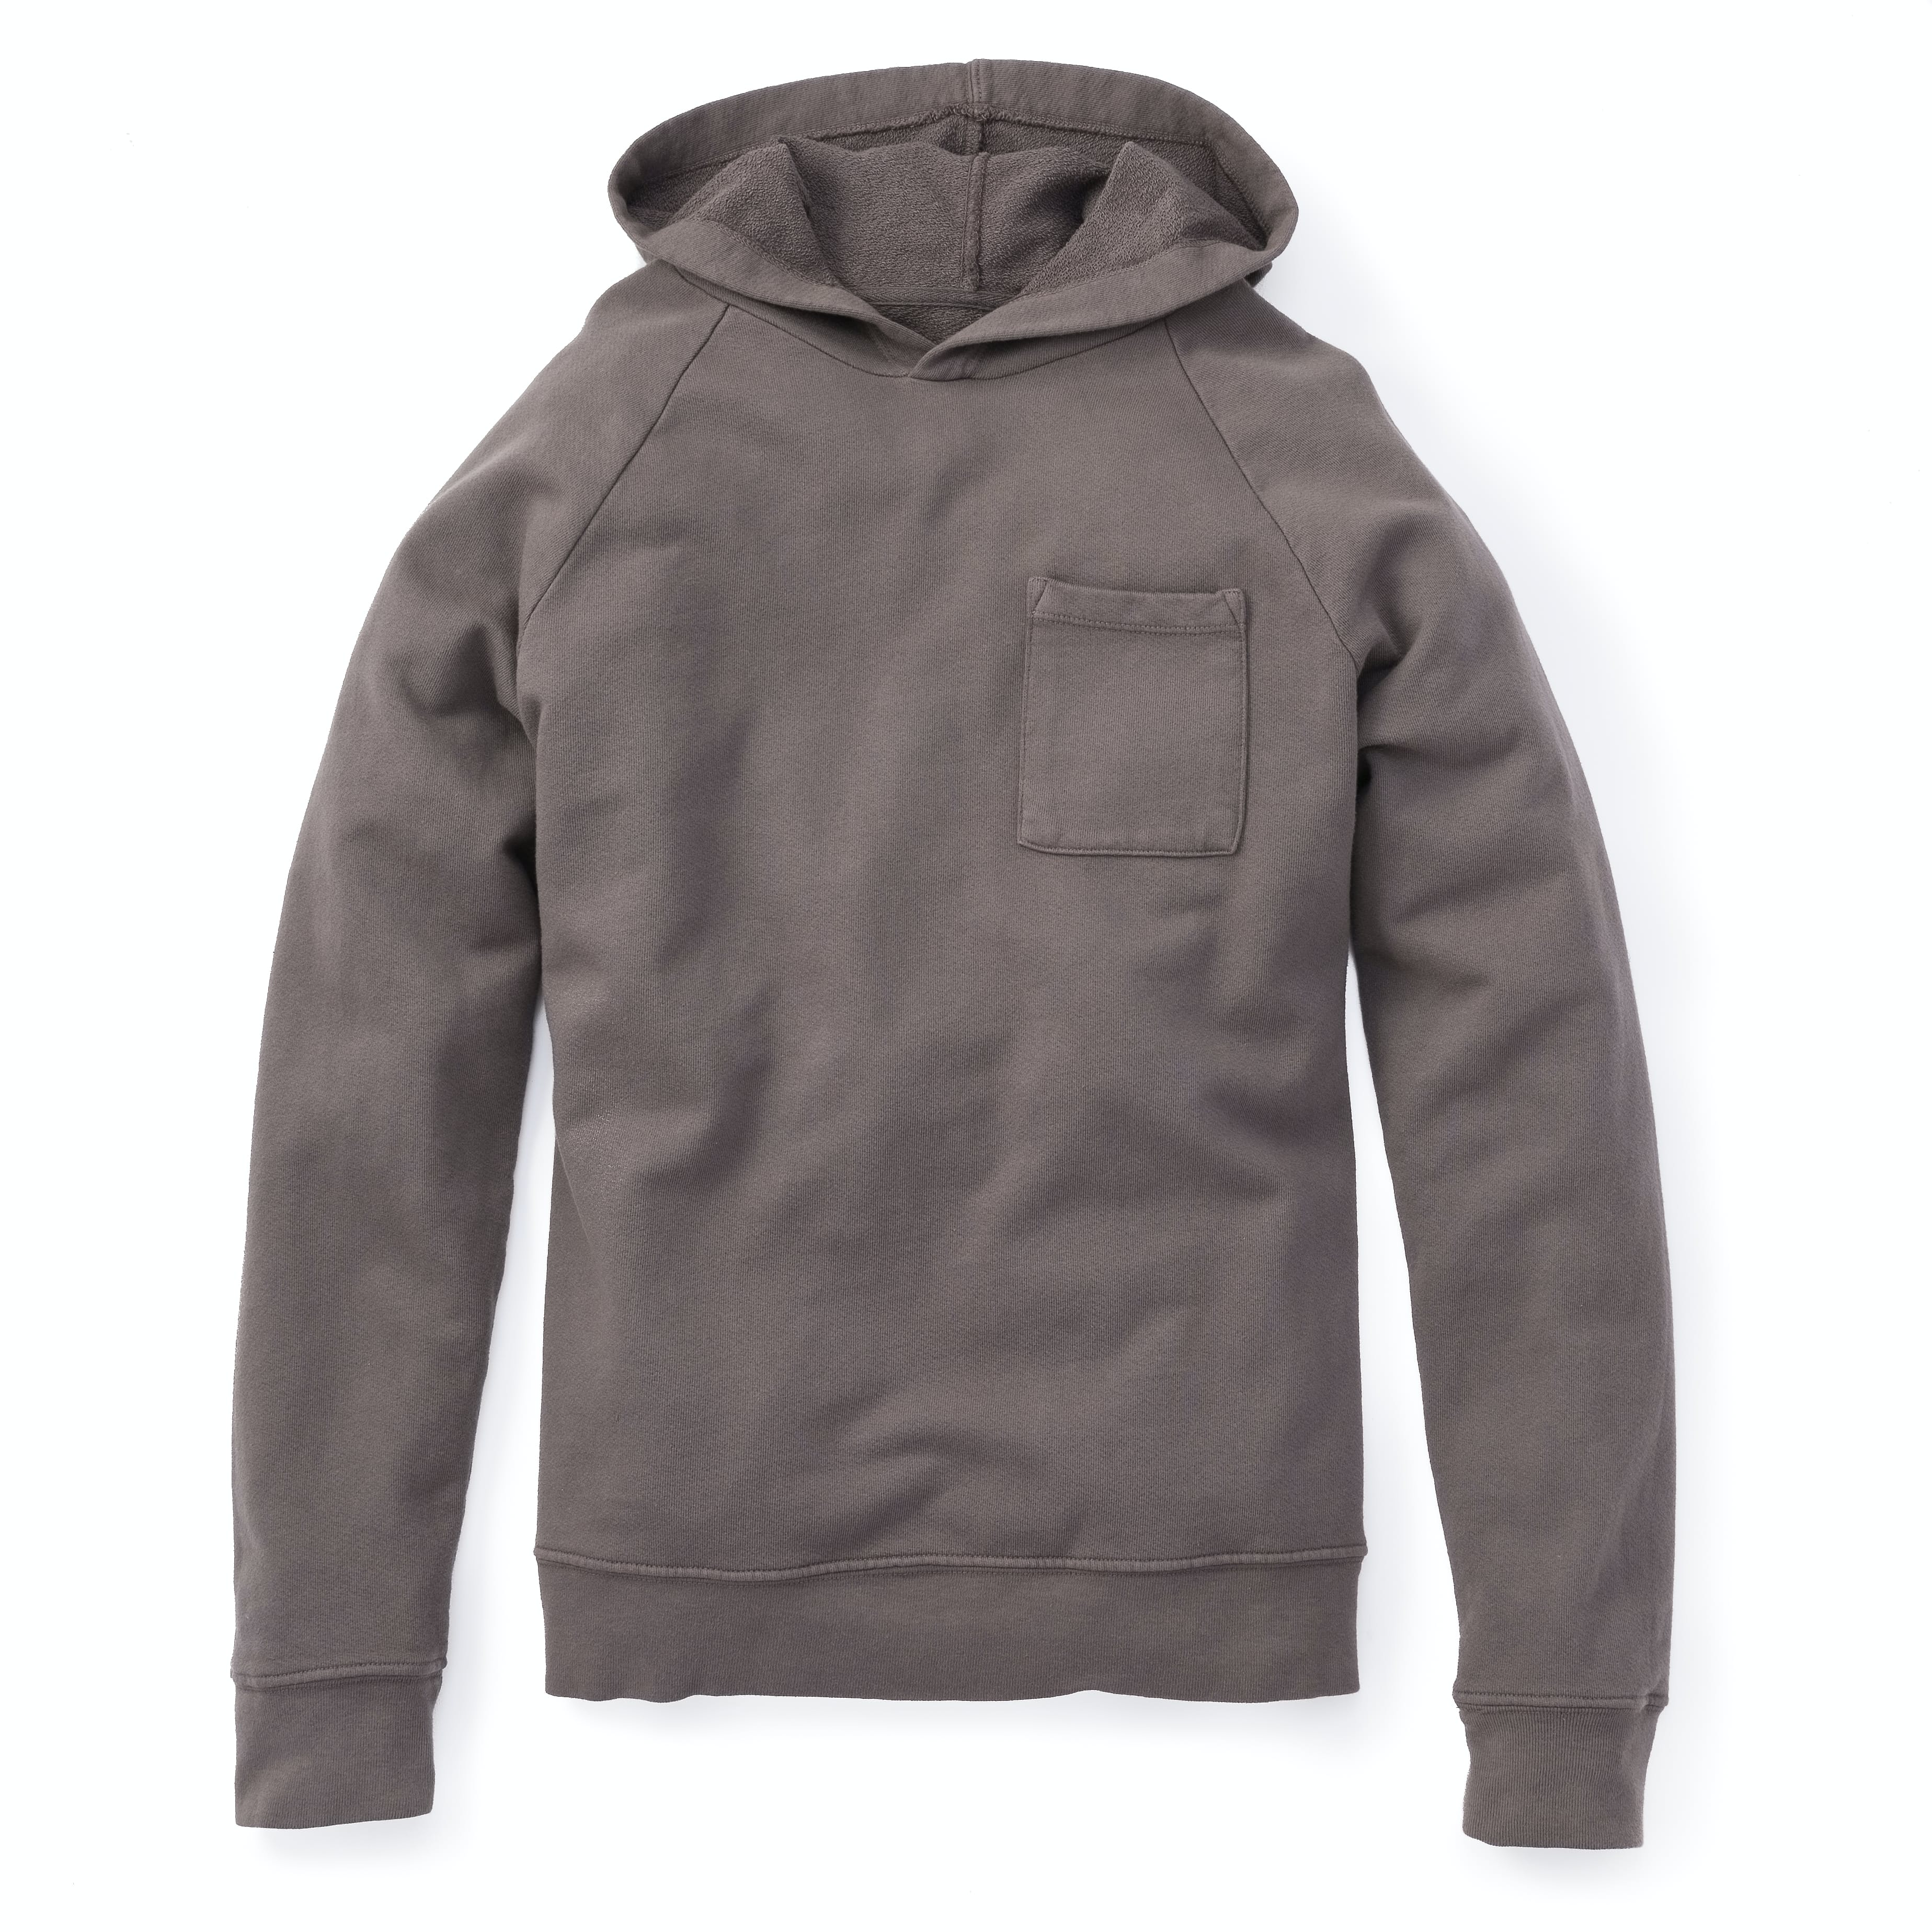 Bw8m8noztg flint and tinder pocket pullover 0 original